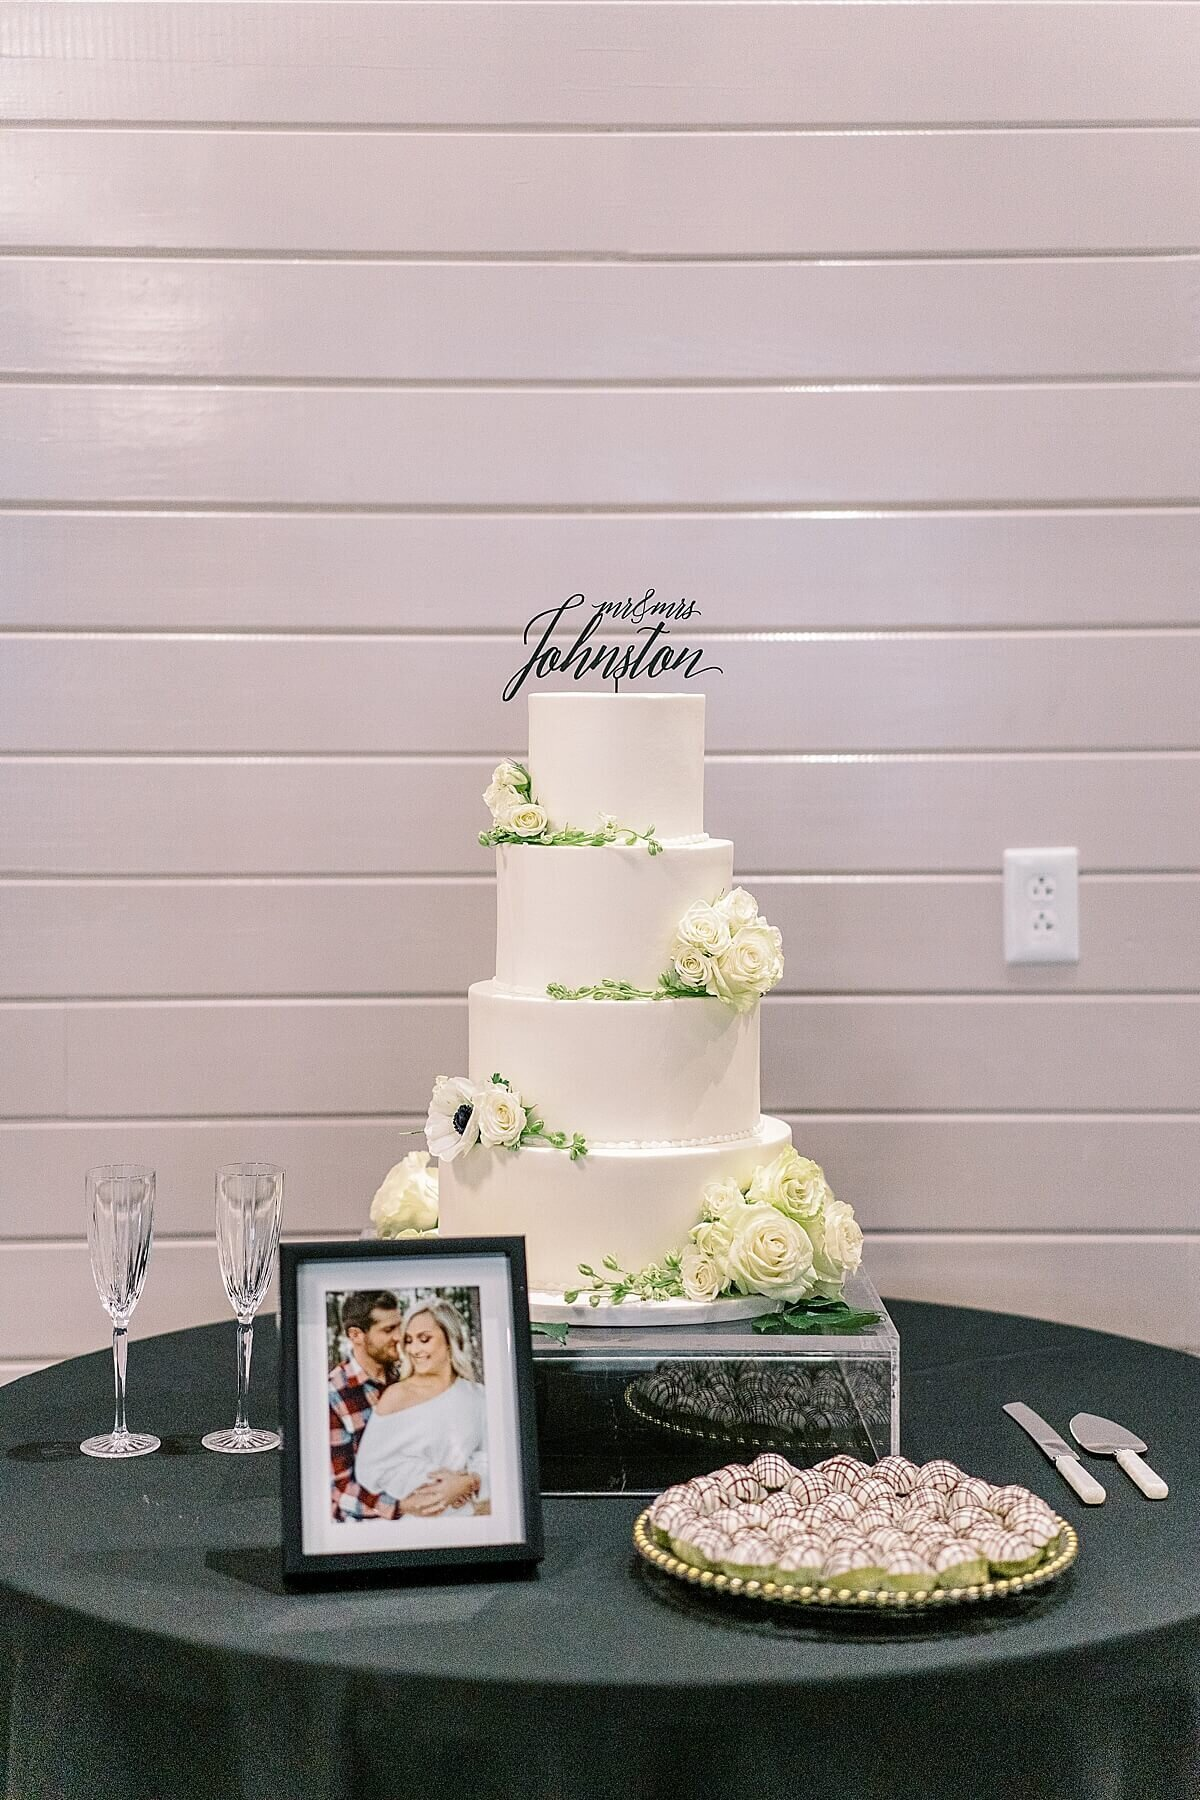 Black-and-White-Themed-Houston-Wedding-at-The-Annex-Wedding-Venue-Alicia-Yarrish-Photography-0066